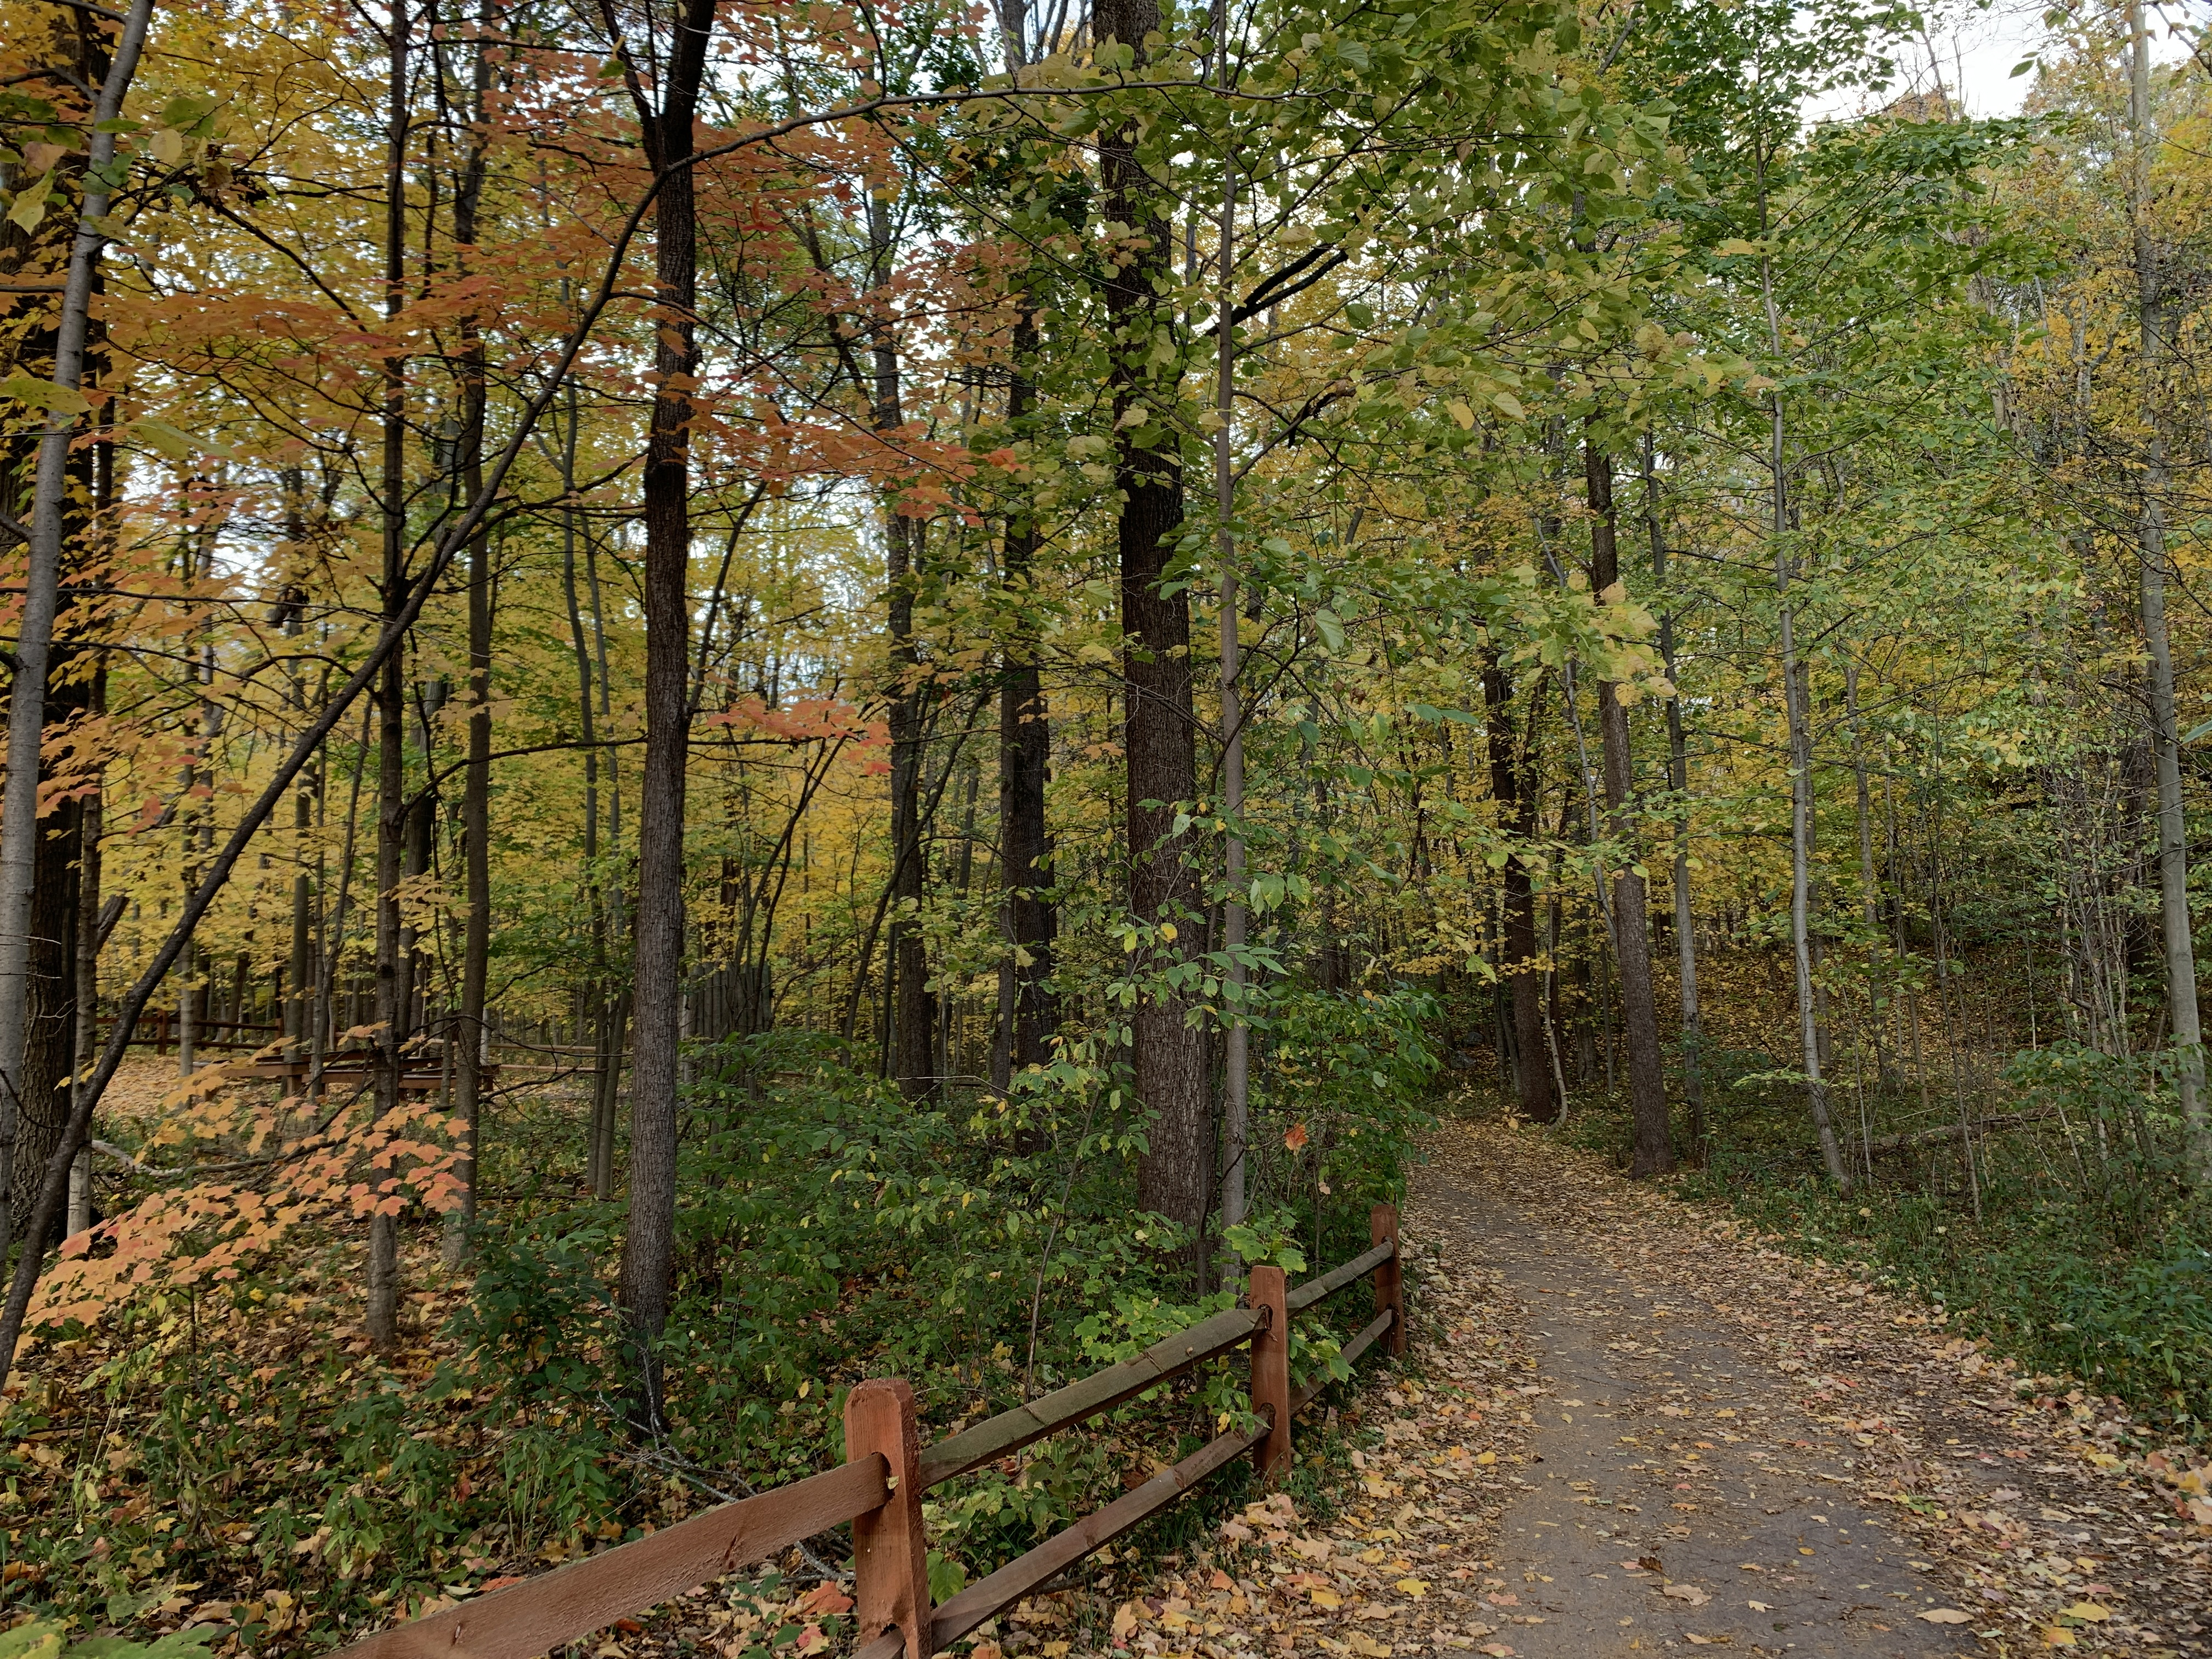 Meridian Township Adopts Plan to Encourage Green Infrastructure